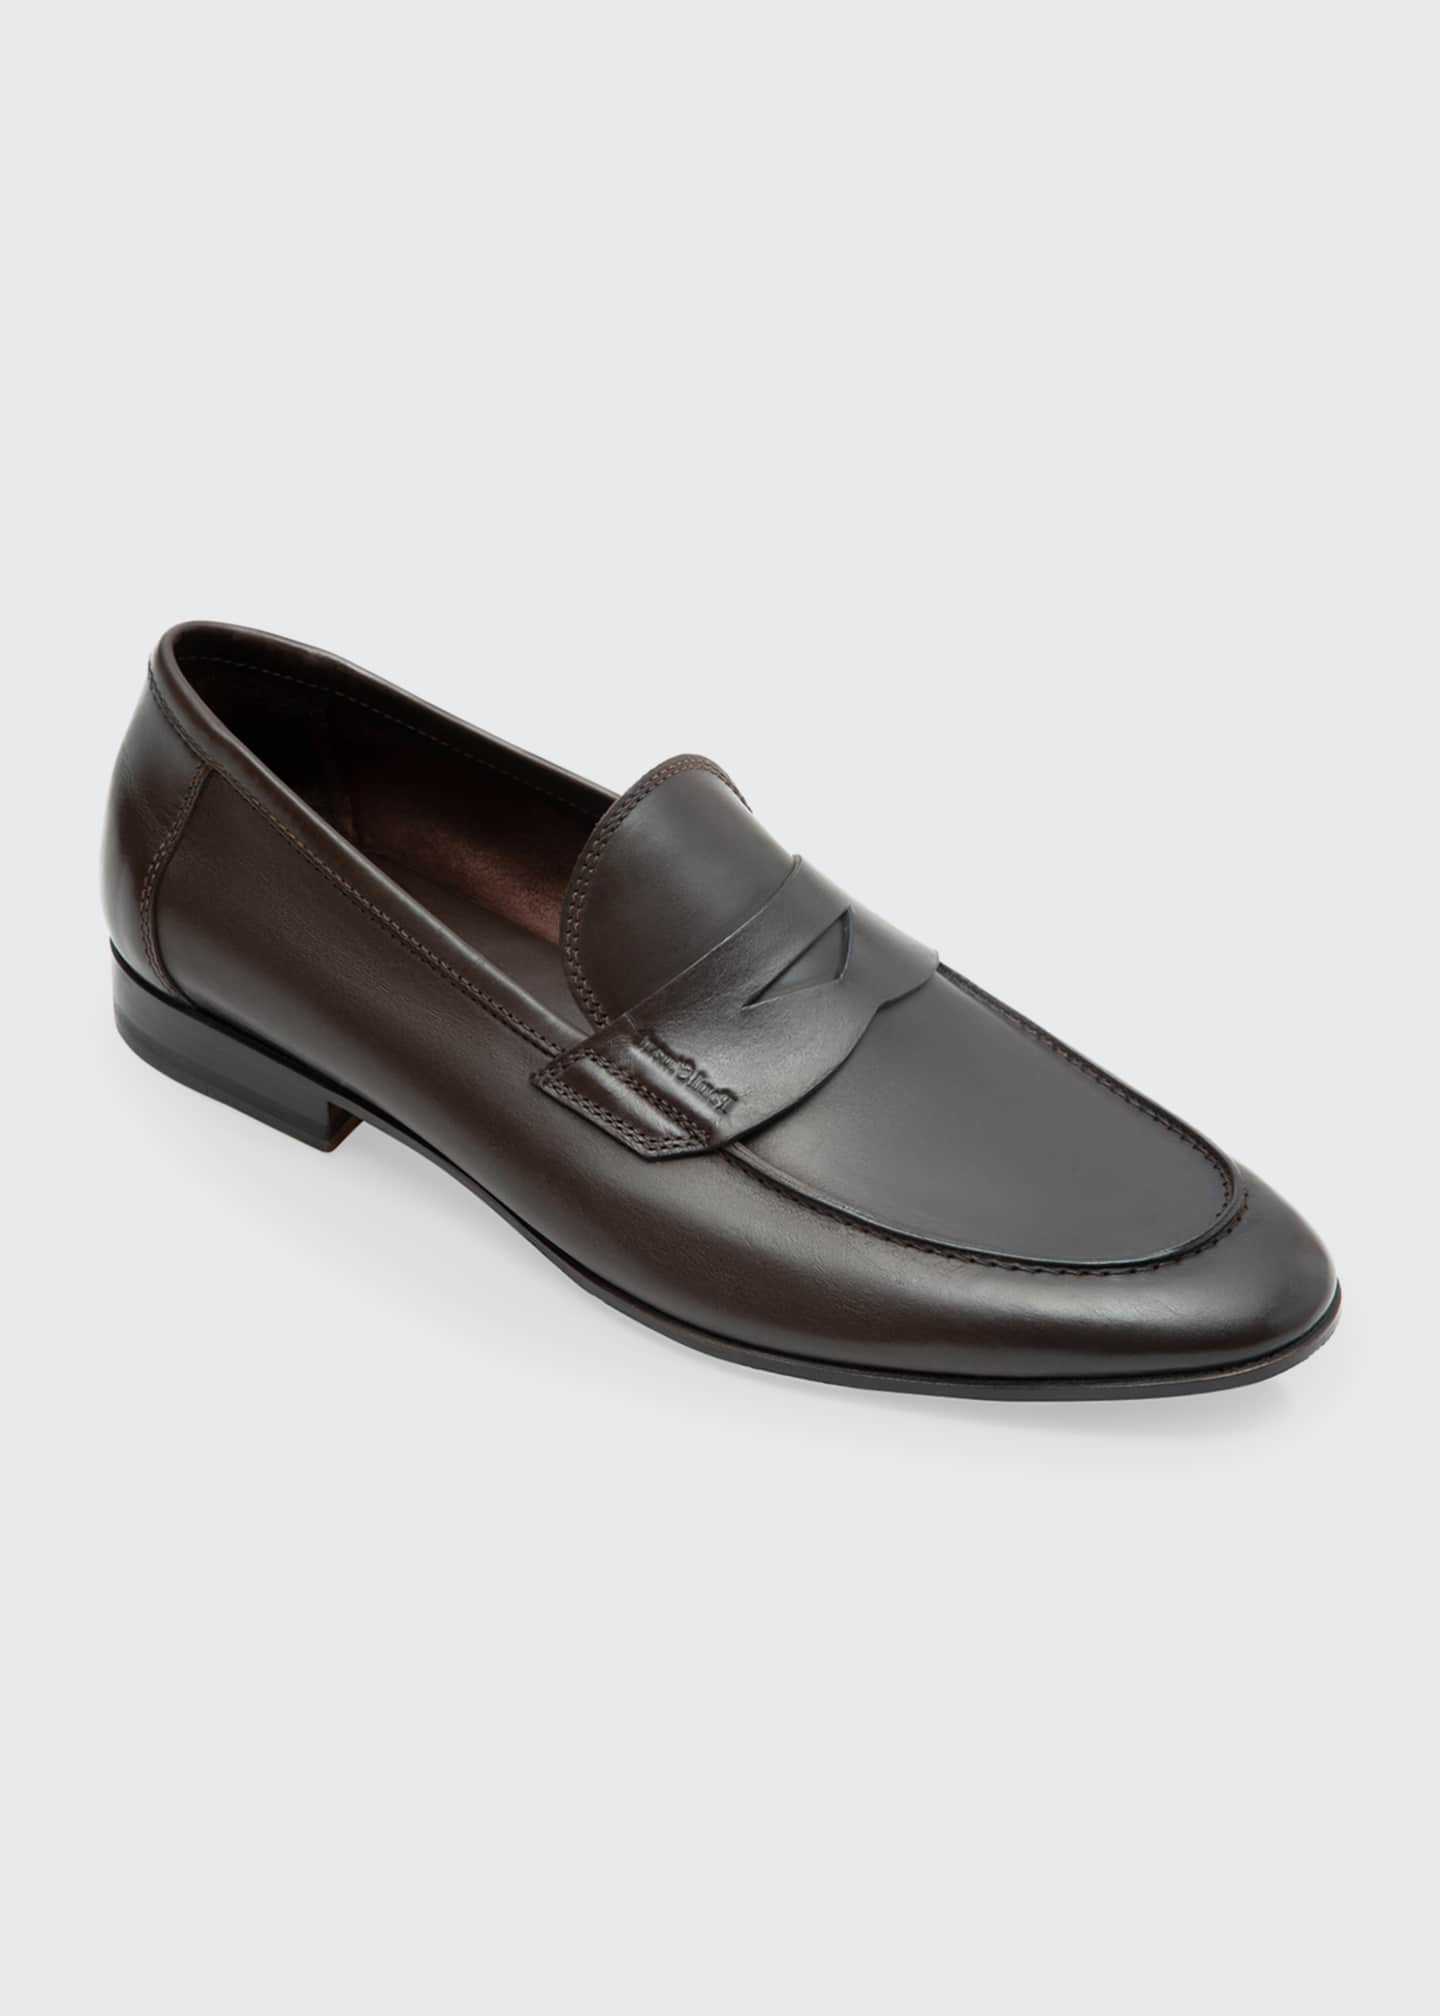 Image 2 of 2: Men's Harlan Leather Penny Loafers